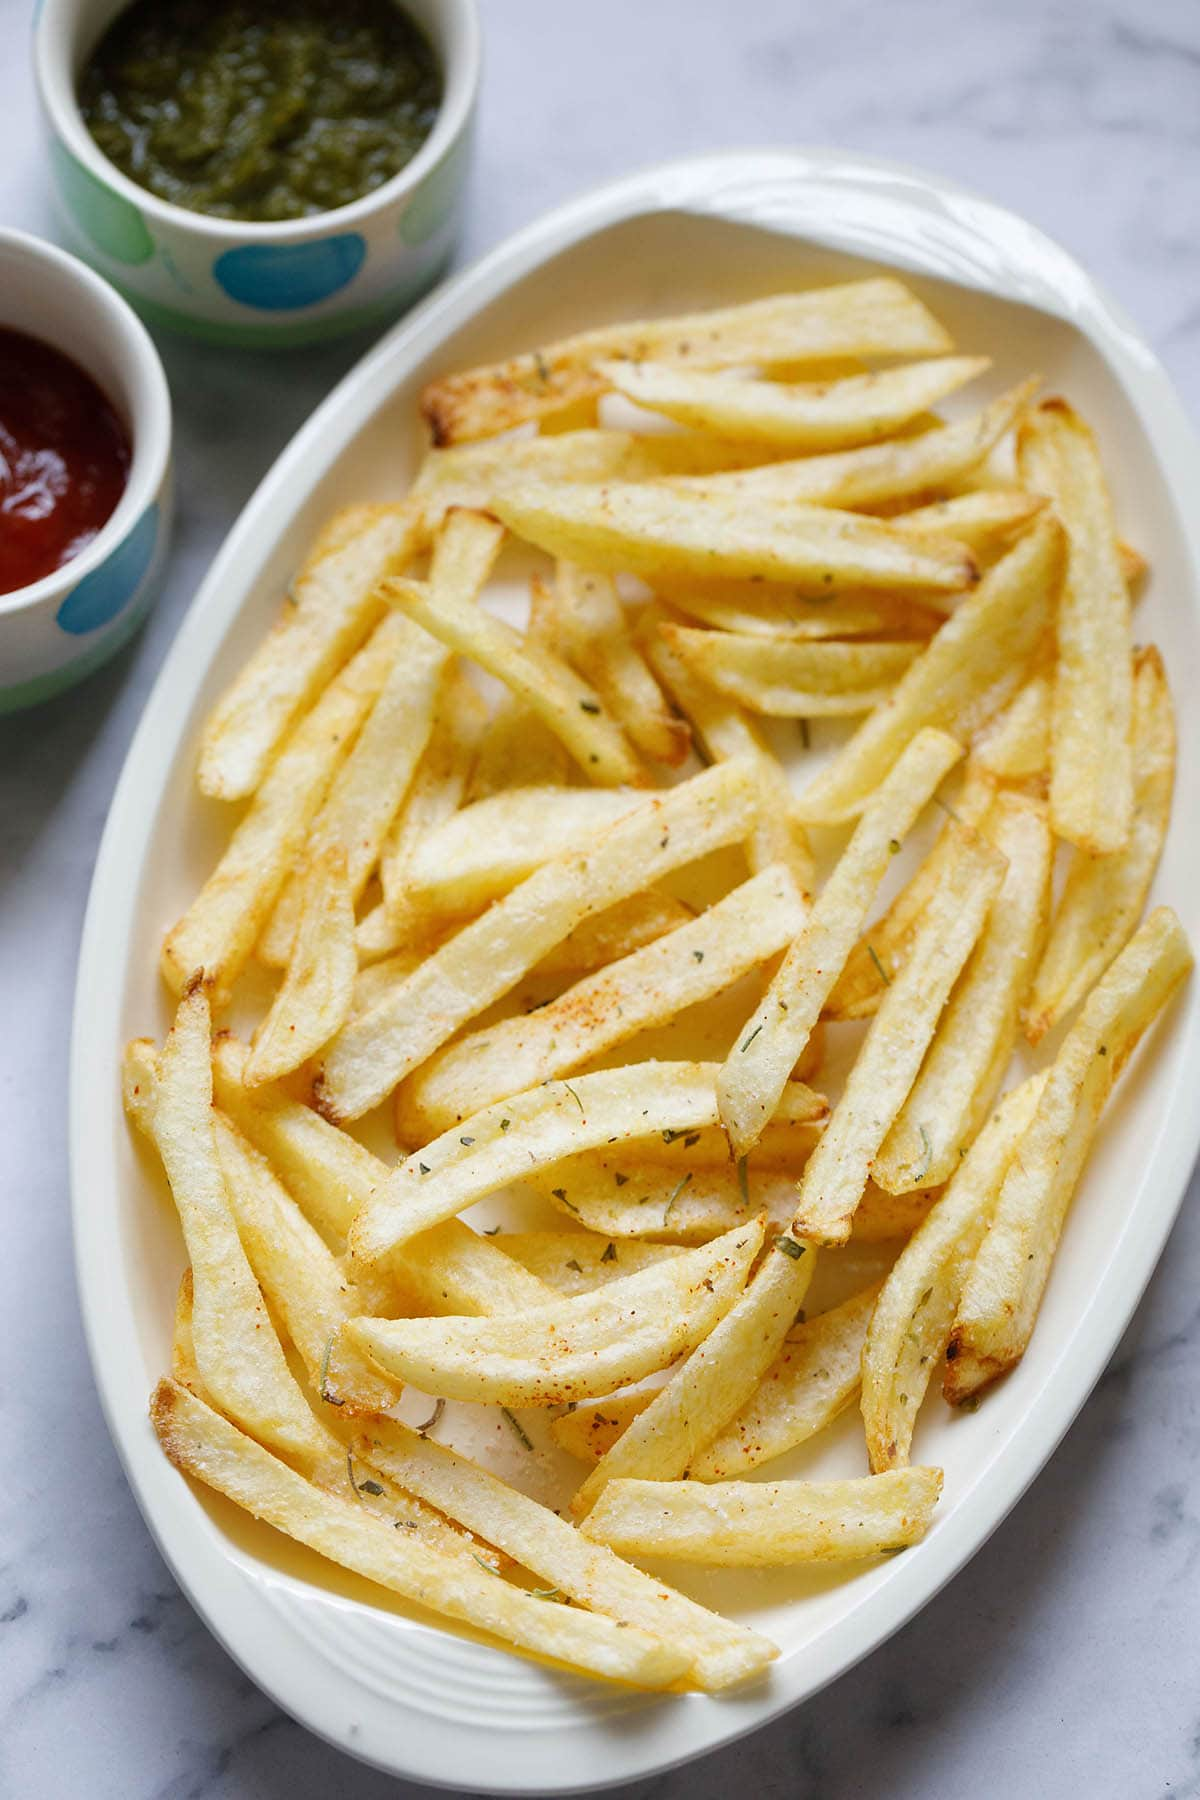 white serving tray filled with homemade french fries next to small dipping bowls of ketchup and green chutney